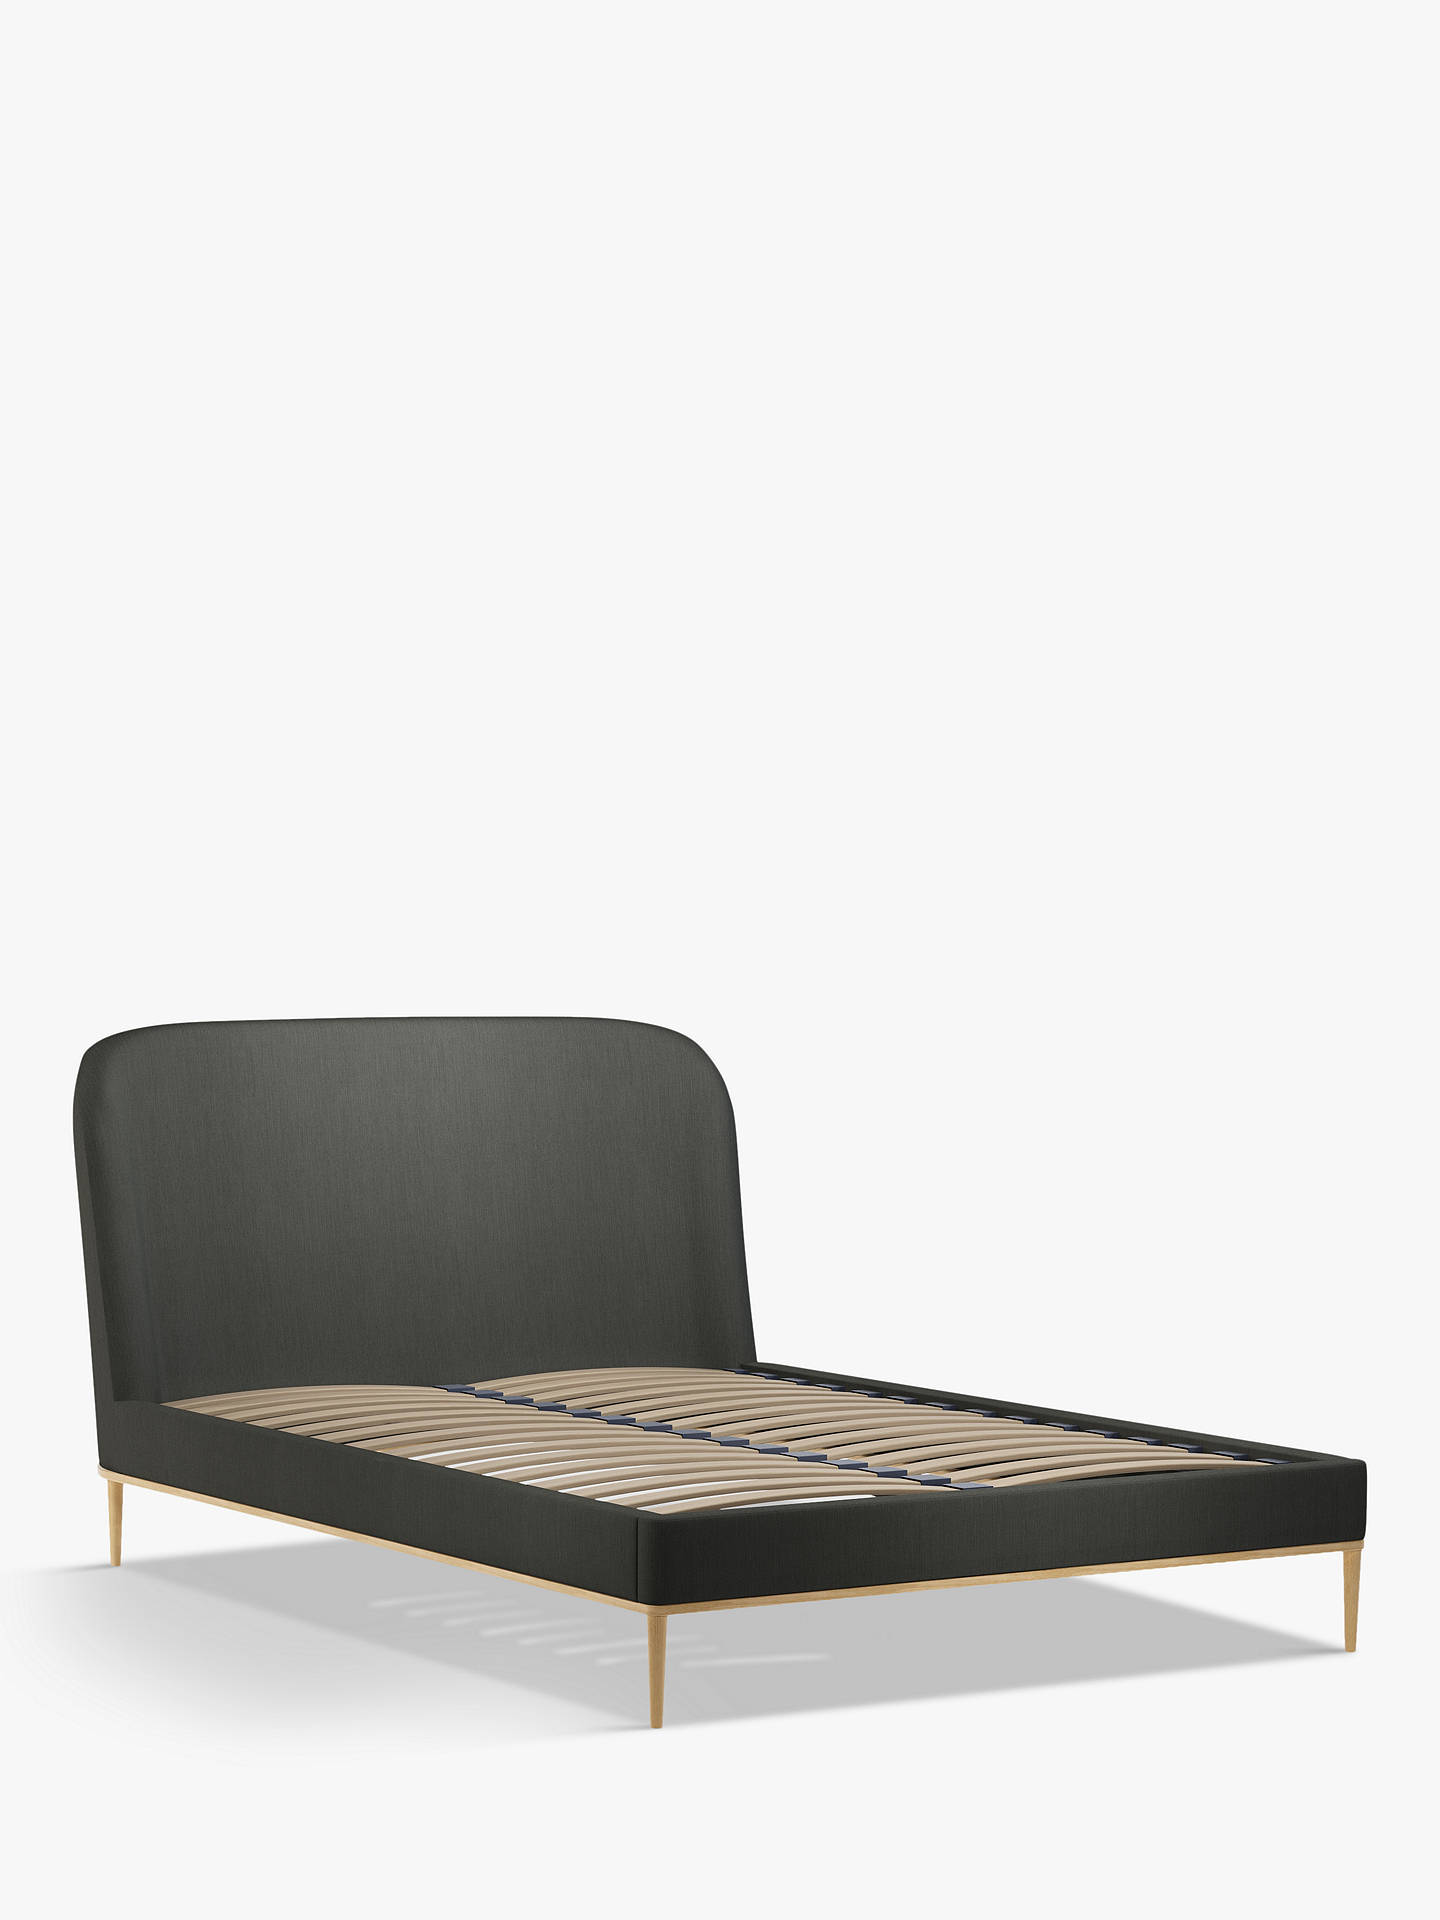 Buy John Lewis & Partners Show-Wood Upholstered Bed Frame, Double, Topaz Charcoal Online at johnlewis.com